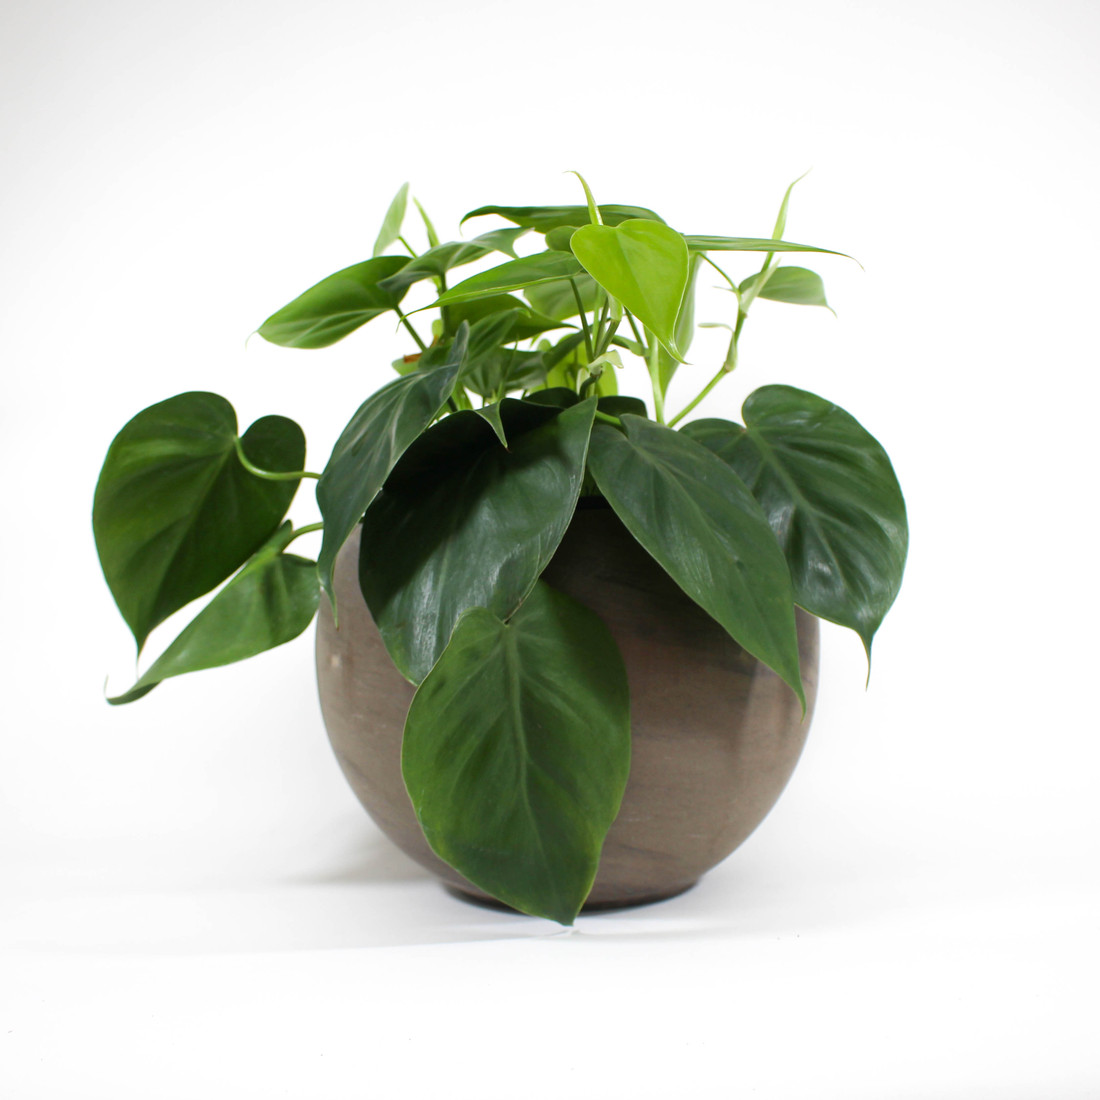 Heart Leaf Philodendron in ceramic pot